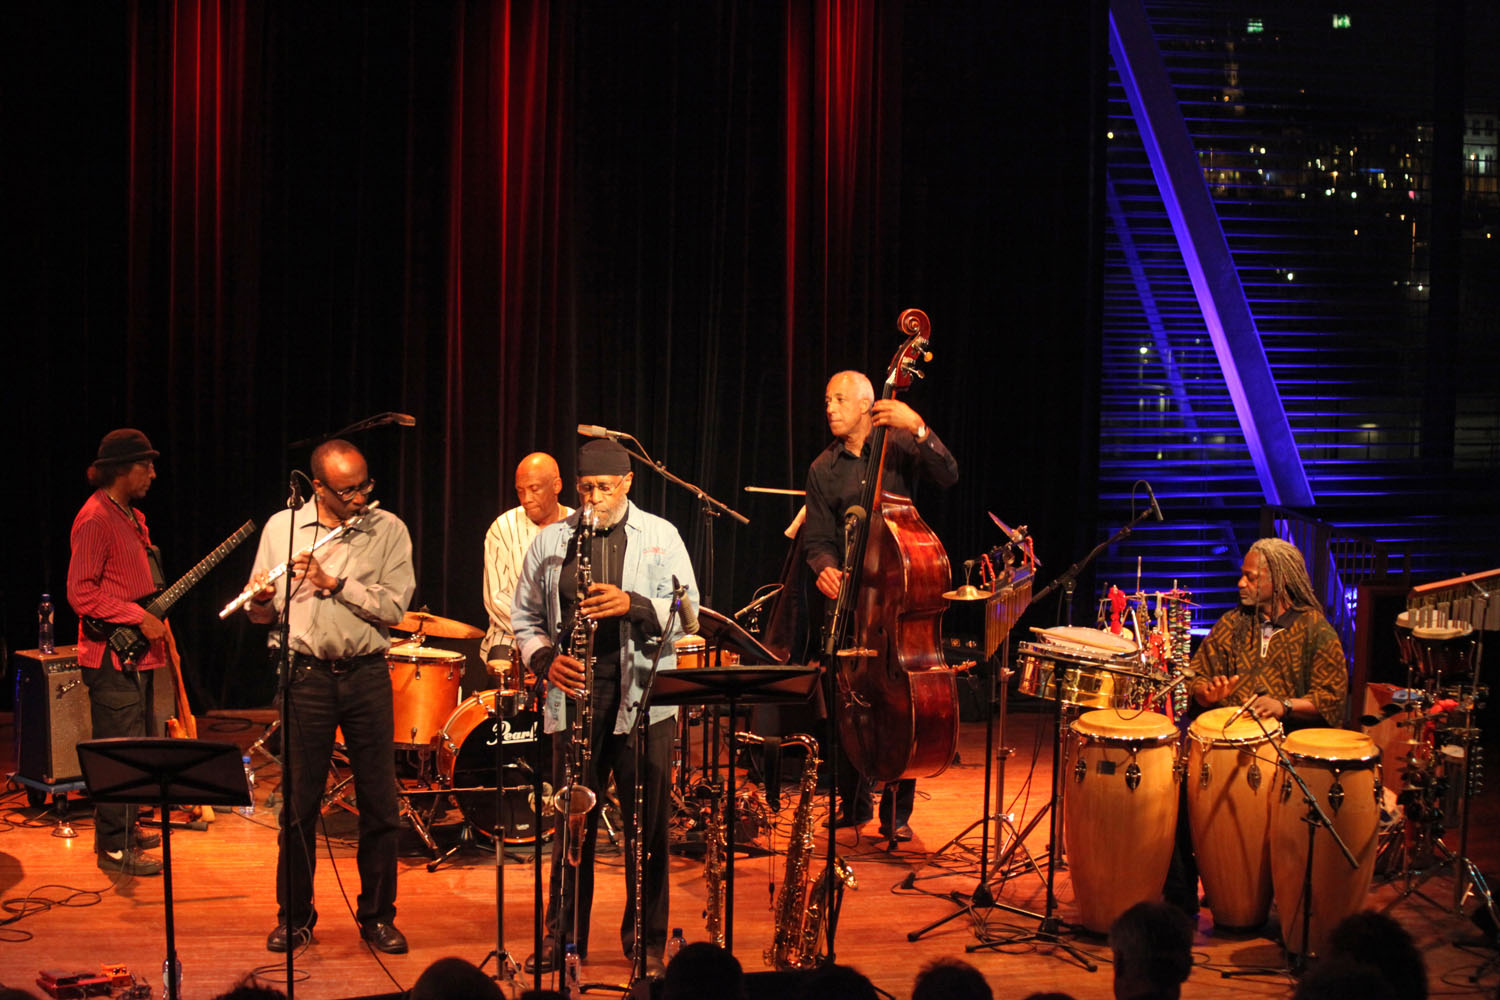 Surinam Music Ensemble ft. Bennie Maupin